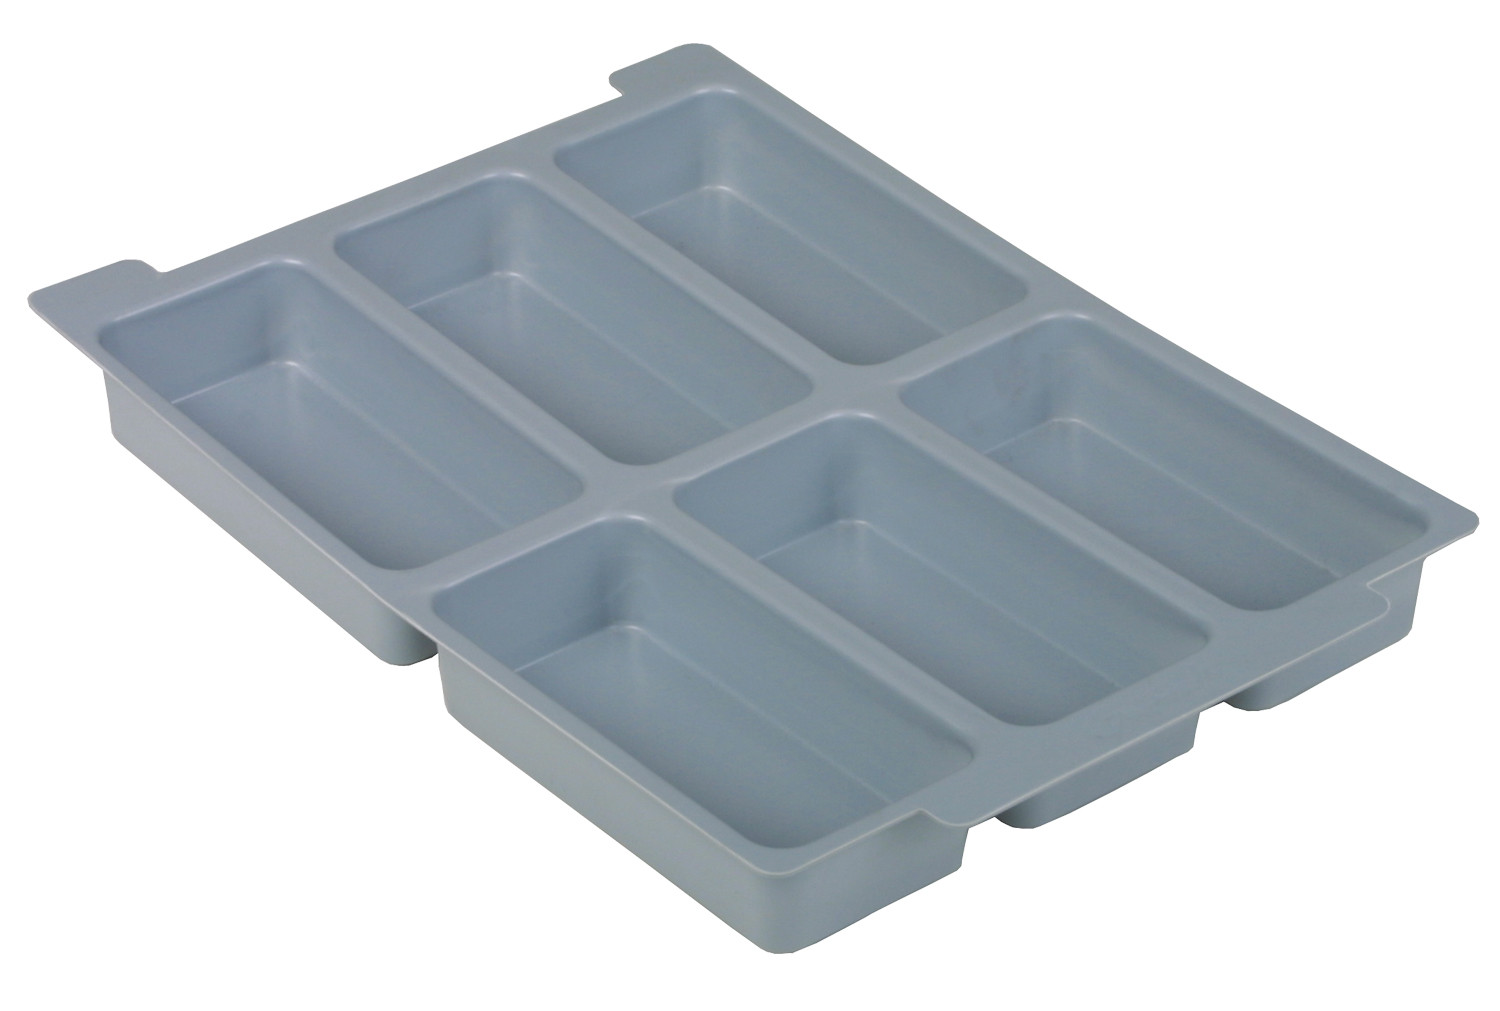 6 compartment insert for Gratnell shallow trays